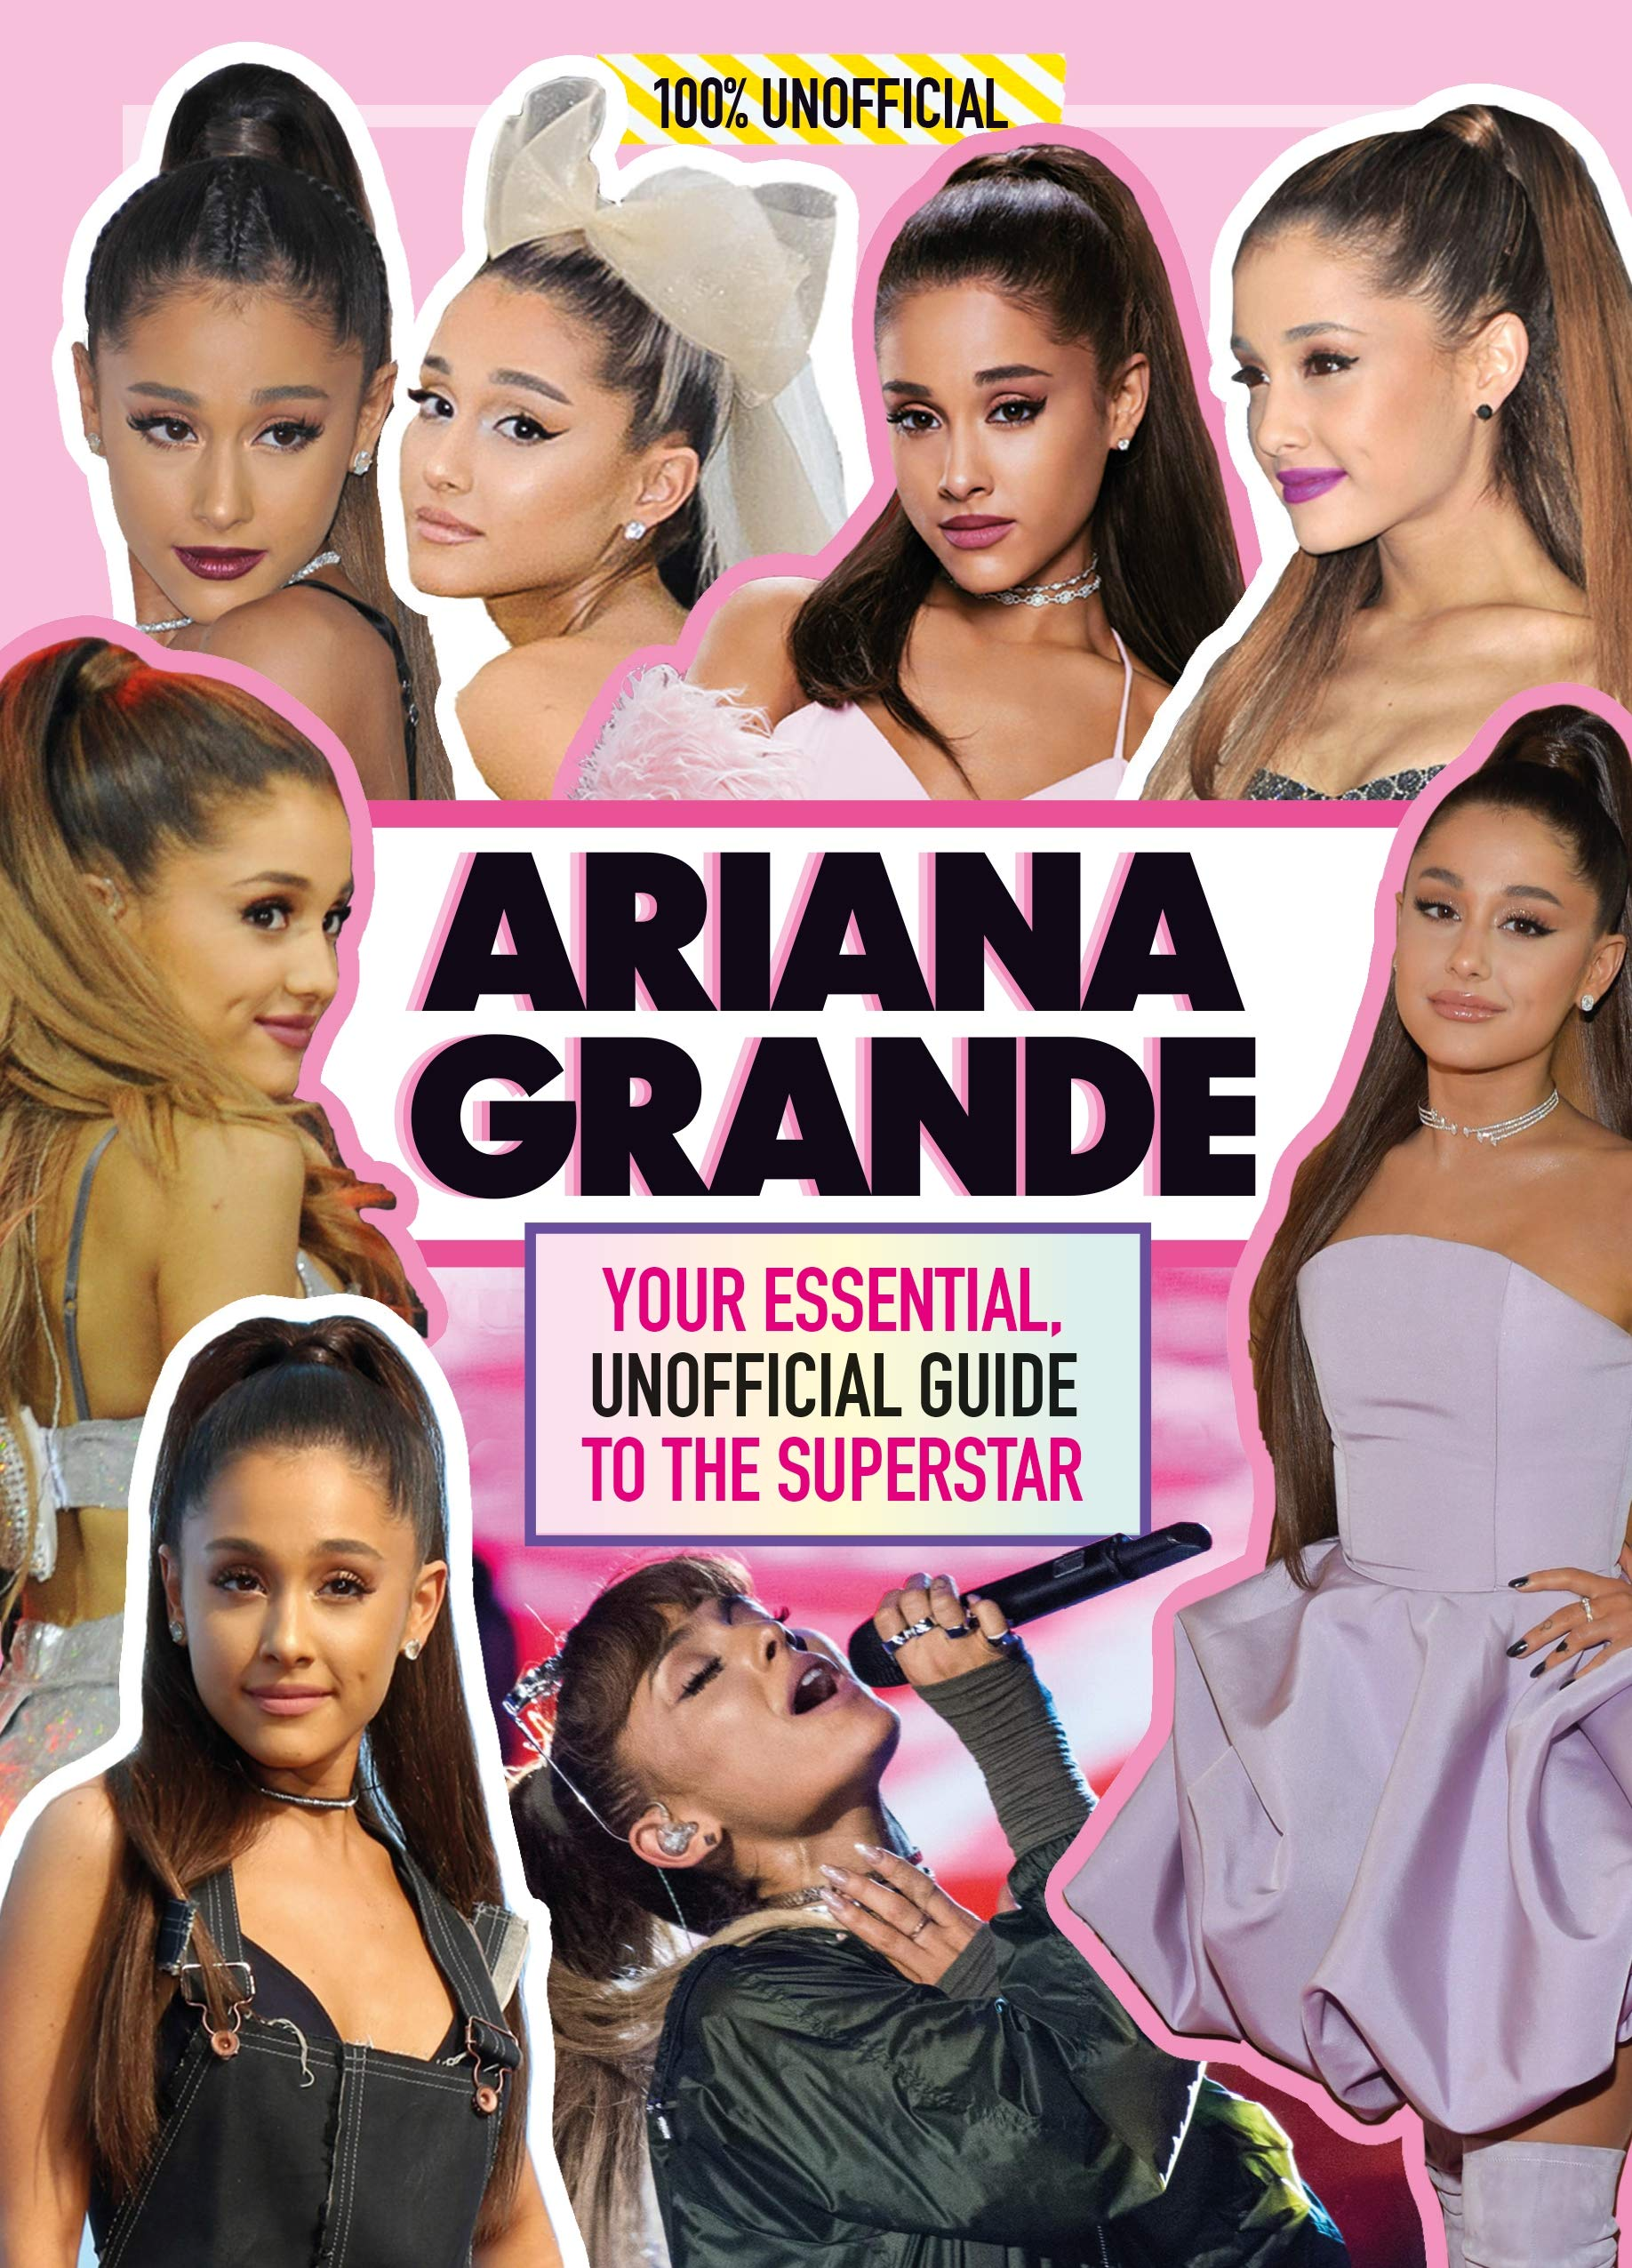 Ariana Grande 100% Unofficial: Your essential unofficial guide book to the superstar Ariana Grande